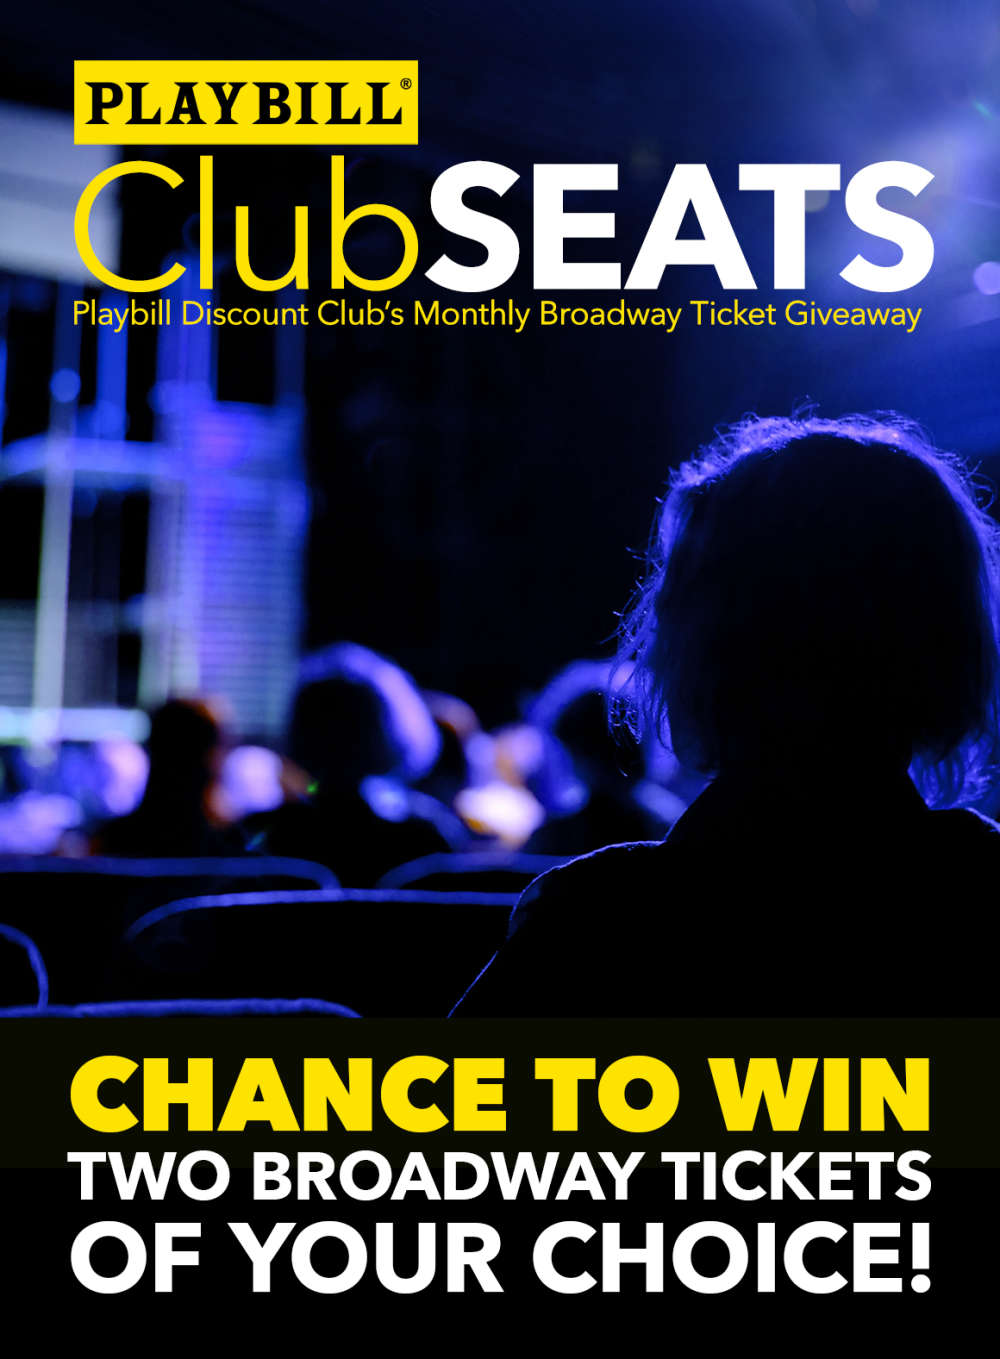 Communication on this topic: How to Win Broadway Tickets, how-to-win-broadway-tickets/